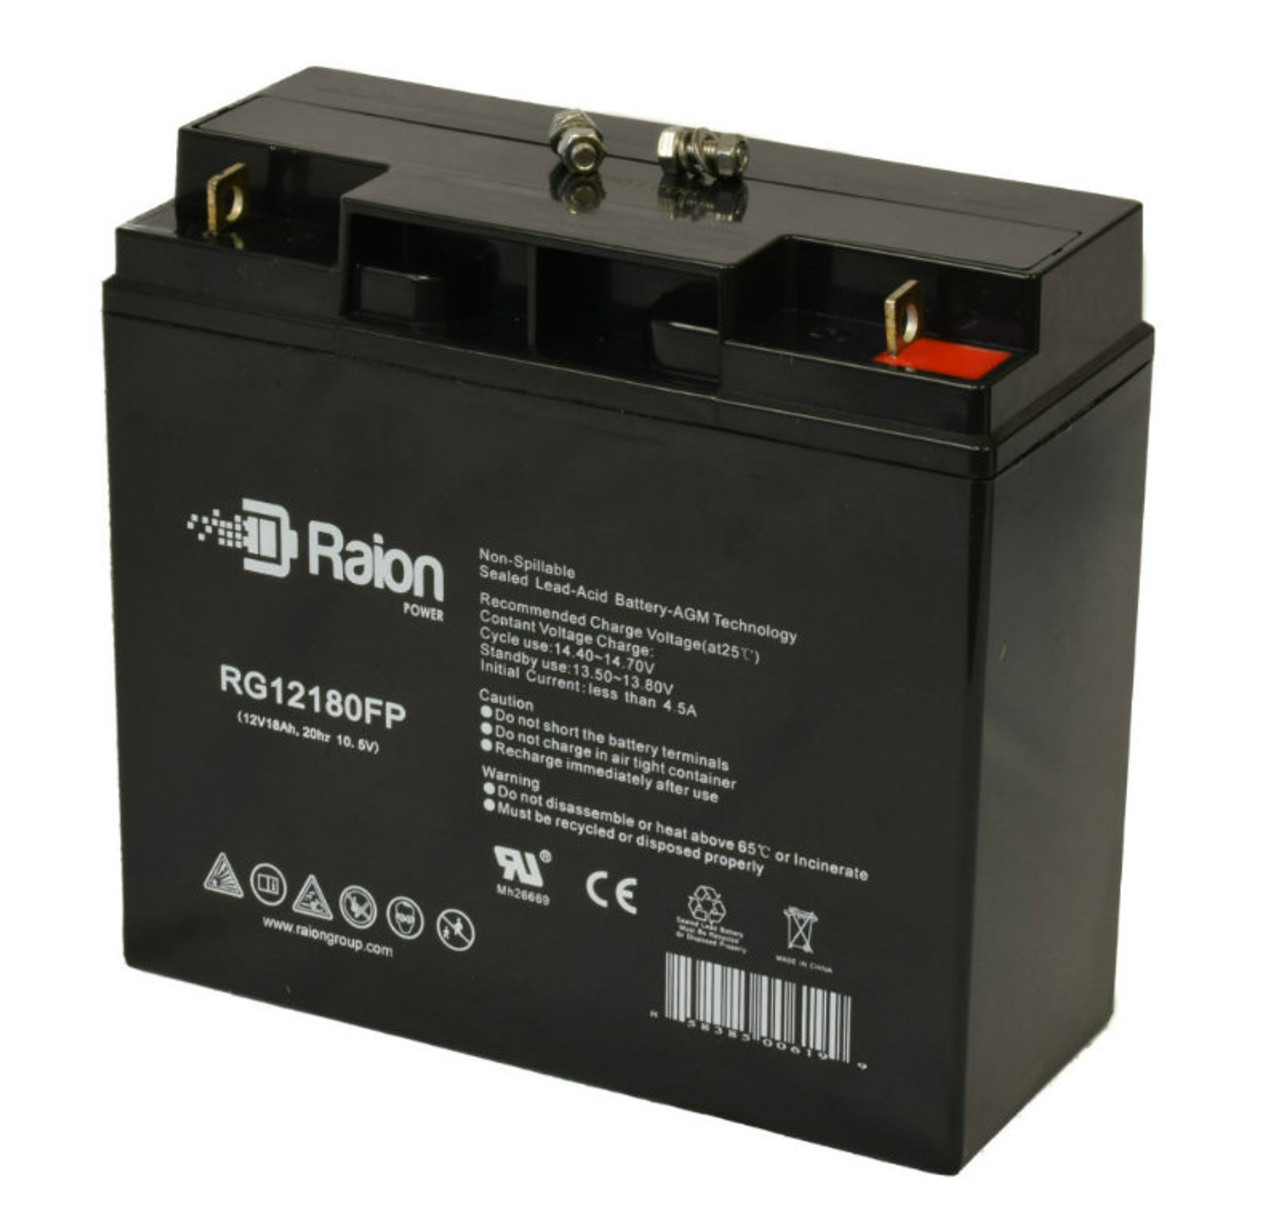 Raion Power RG12180FP Replacement Battery For Bruno Typhoon Mobility Scooter